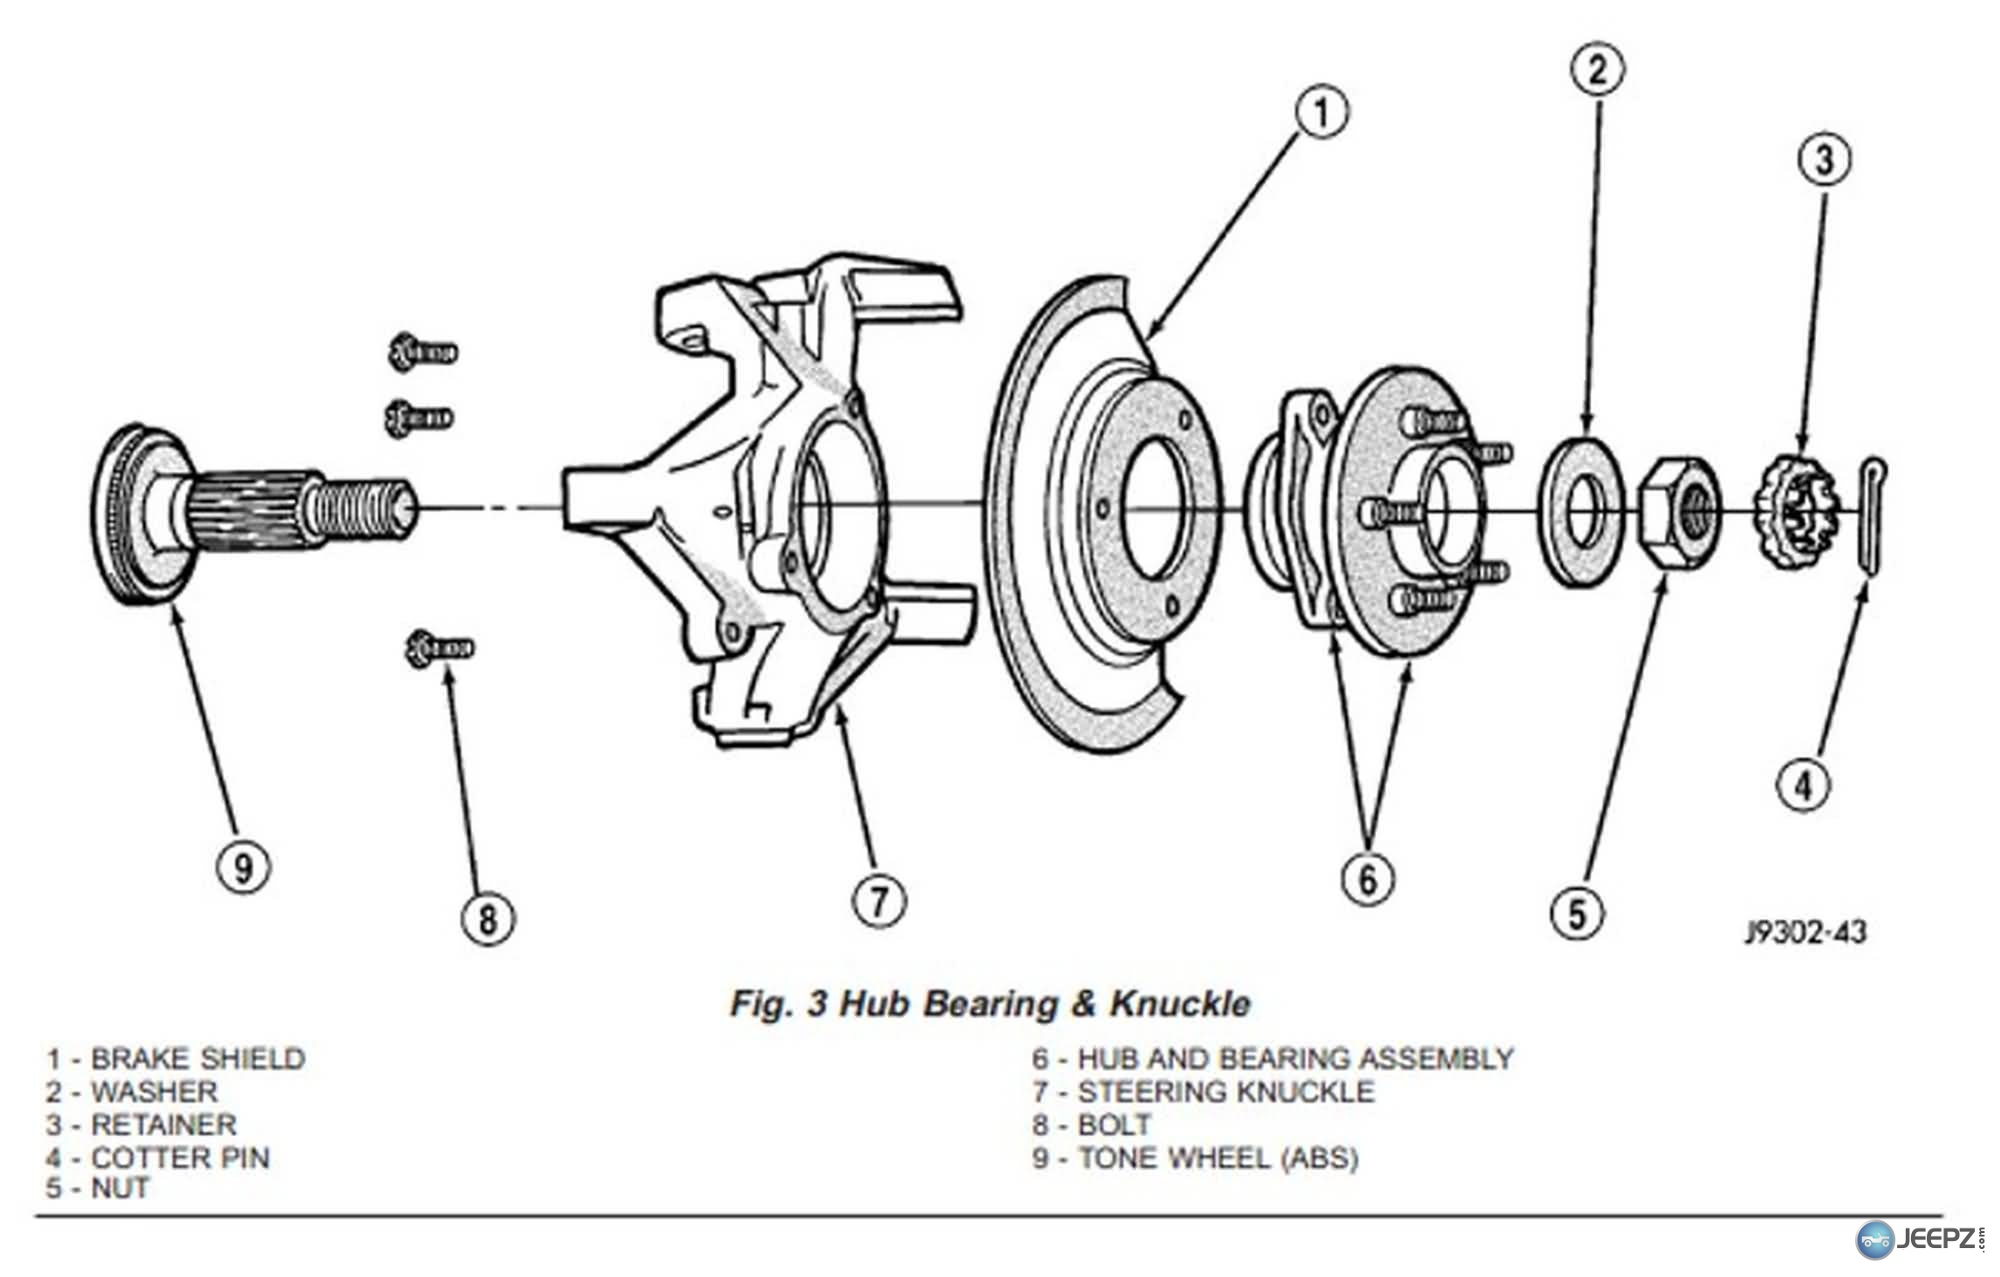 hight resolution of wrangler tj wheel hub bearing assembly replacement 1 tj hub exploded